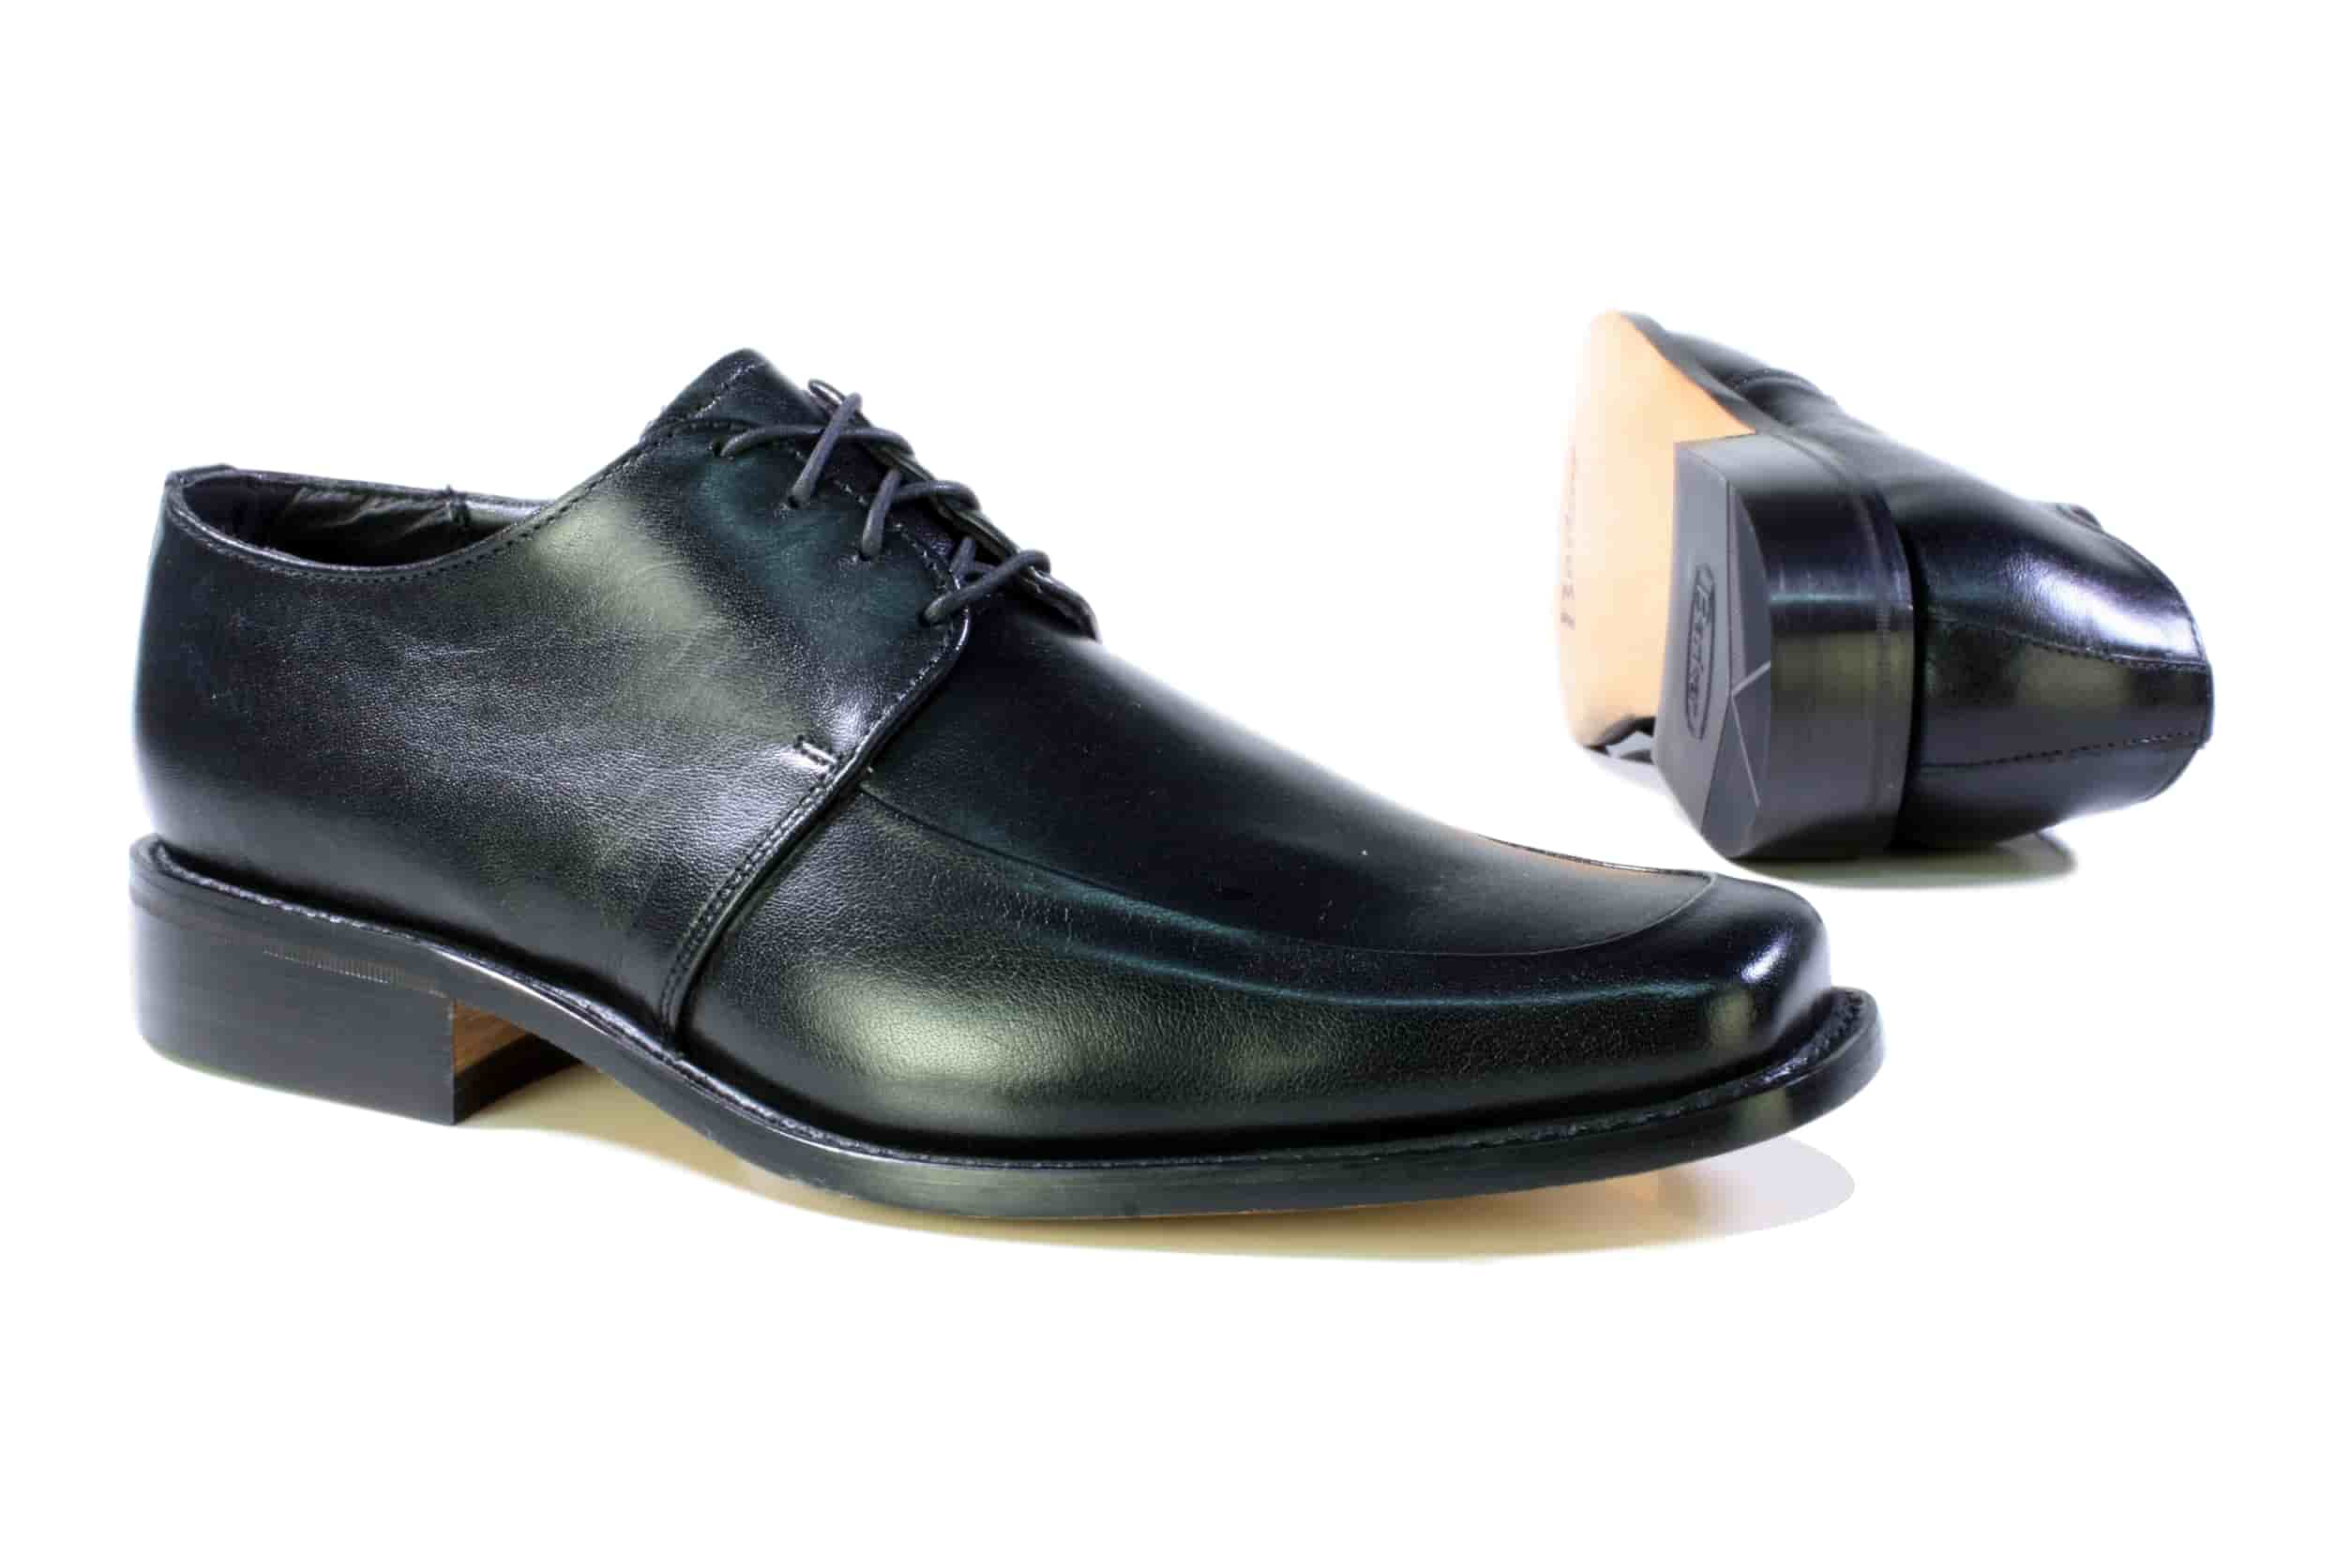 ff488b3fadc4 Branded Shoes for Men